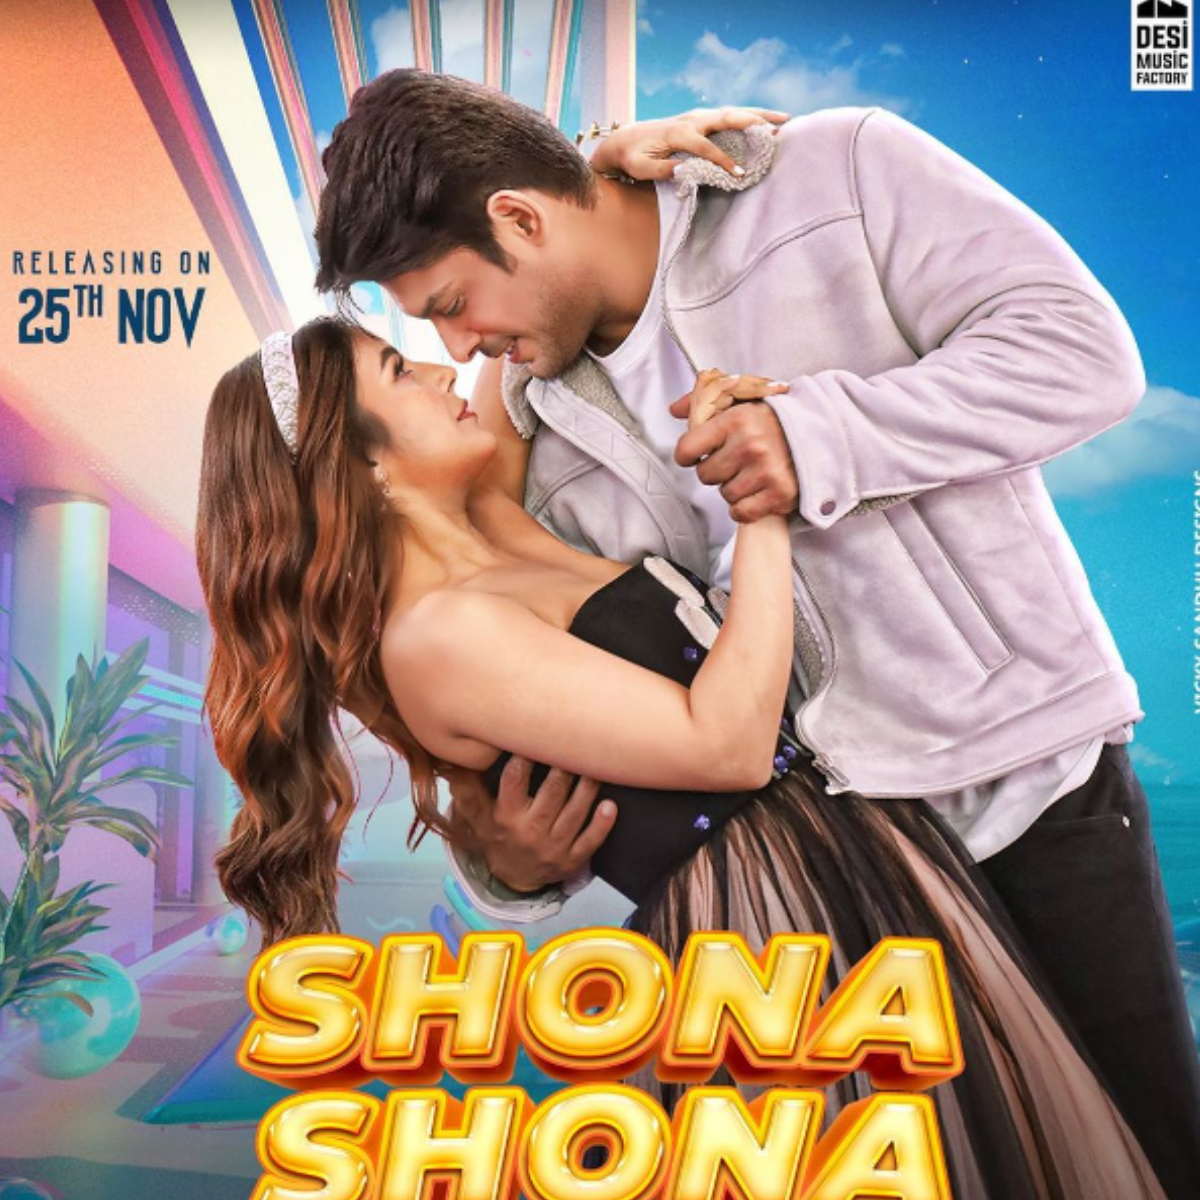 Sidharth Shukla reveals poster of his upcoming song with Shehnaaz Gill